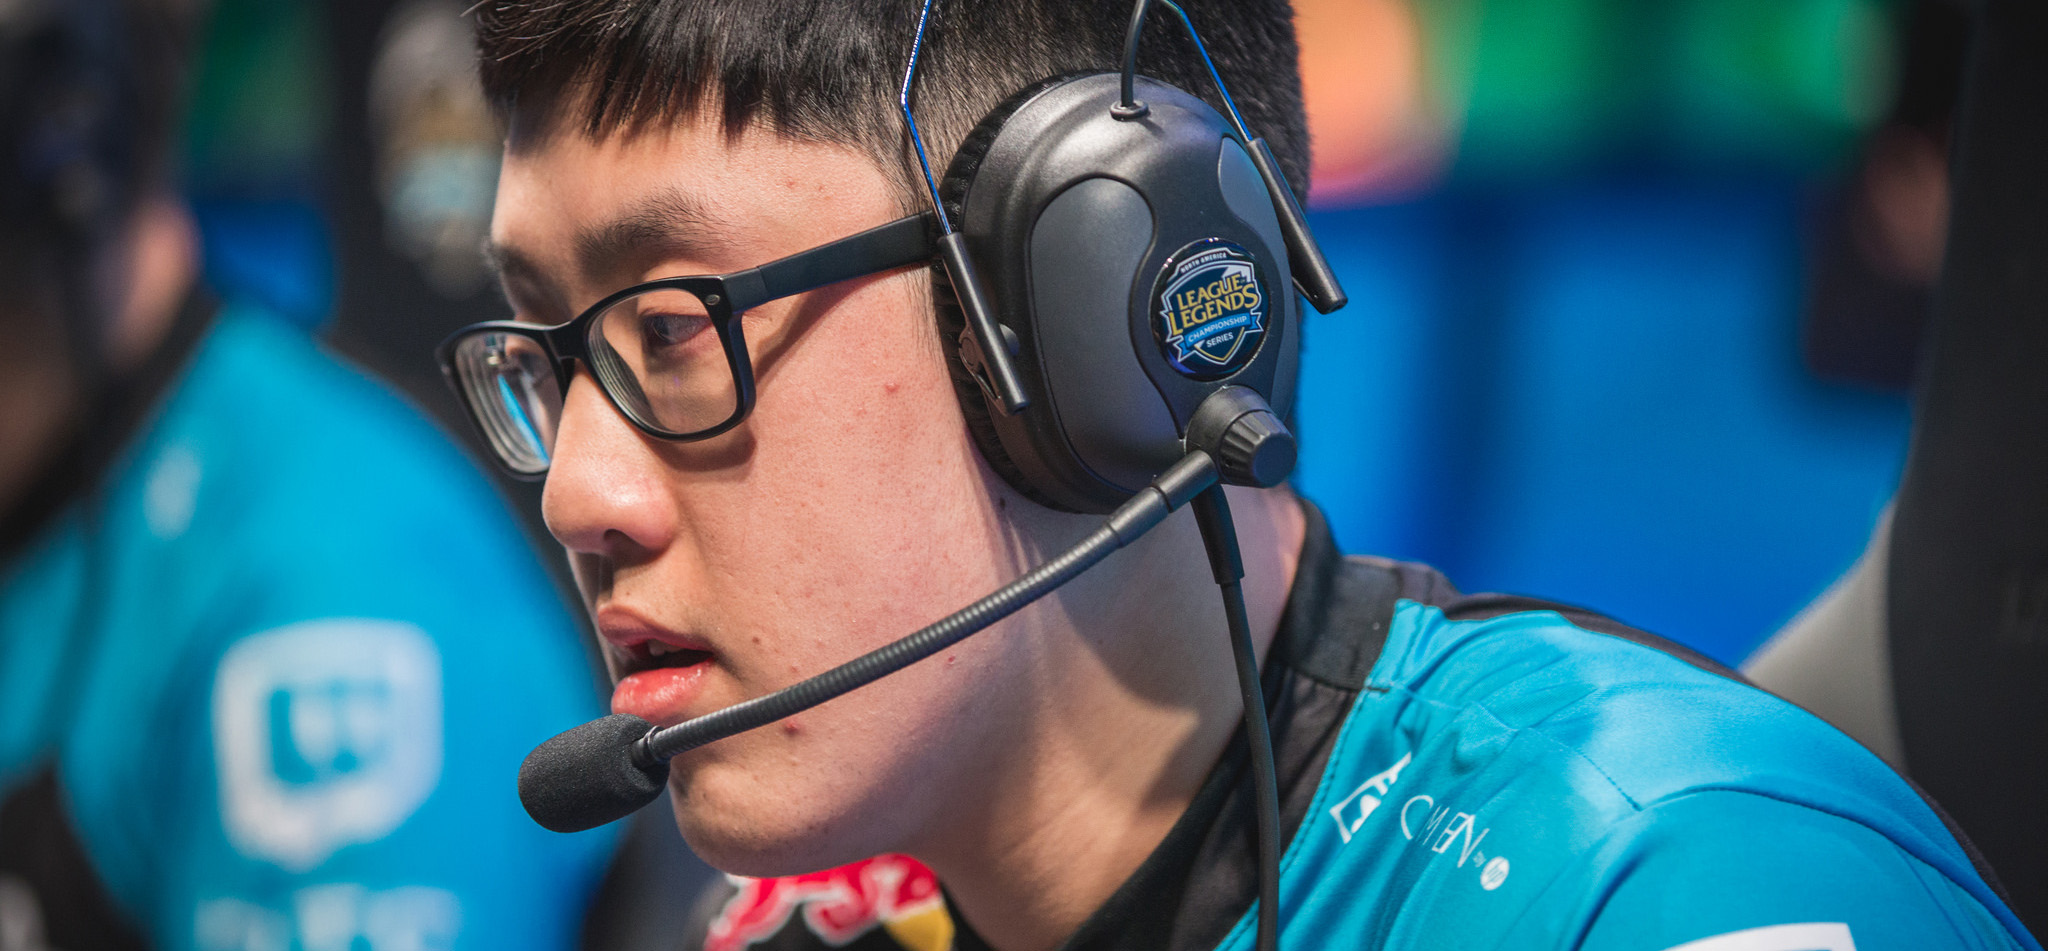 13 Ways Of Looking At Success A Lolesports Feature Keith I Light Stand Profesional Lcs 01 His Teammate Goldenglue Is Also All Too Familiar With The Crush Community Opinion Year After Hes Had To Deal Memes Forever Scrim